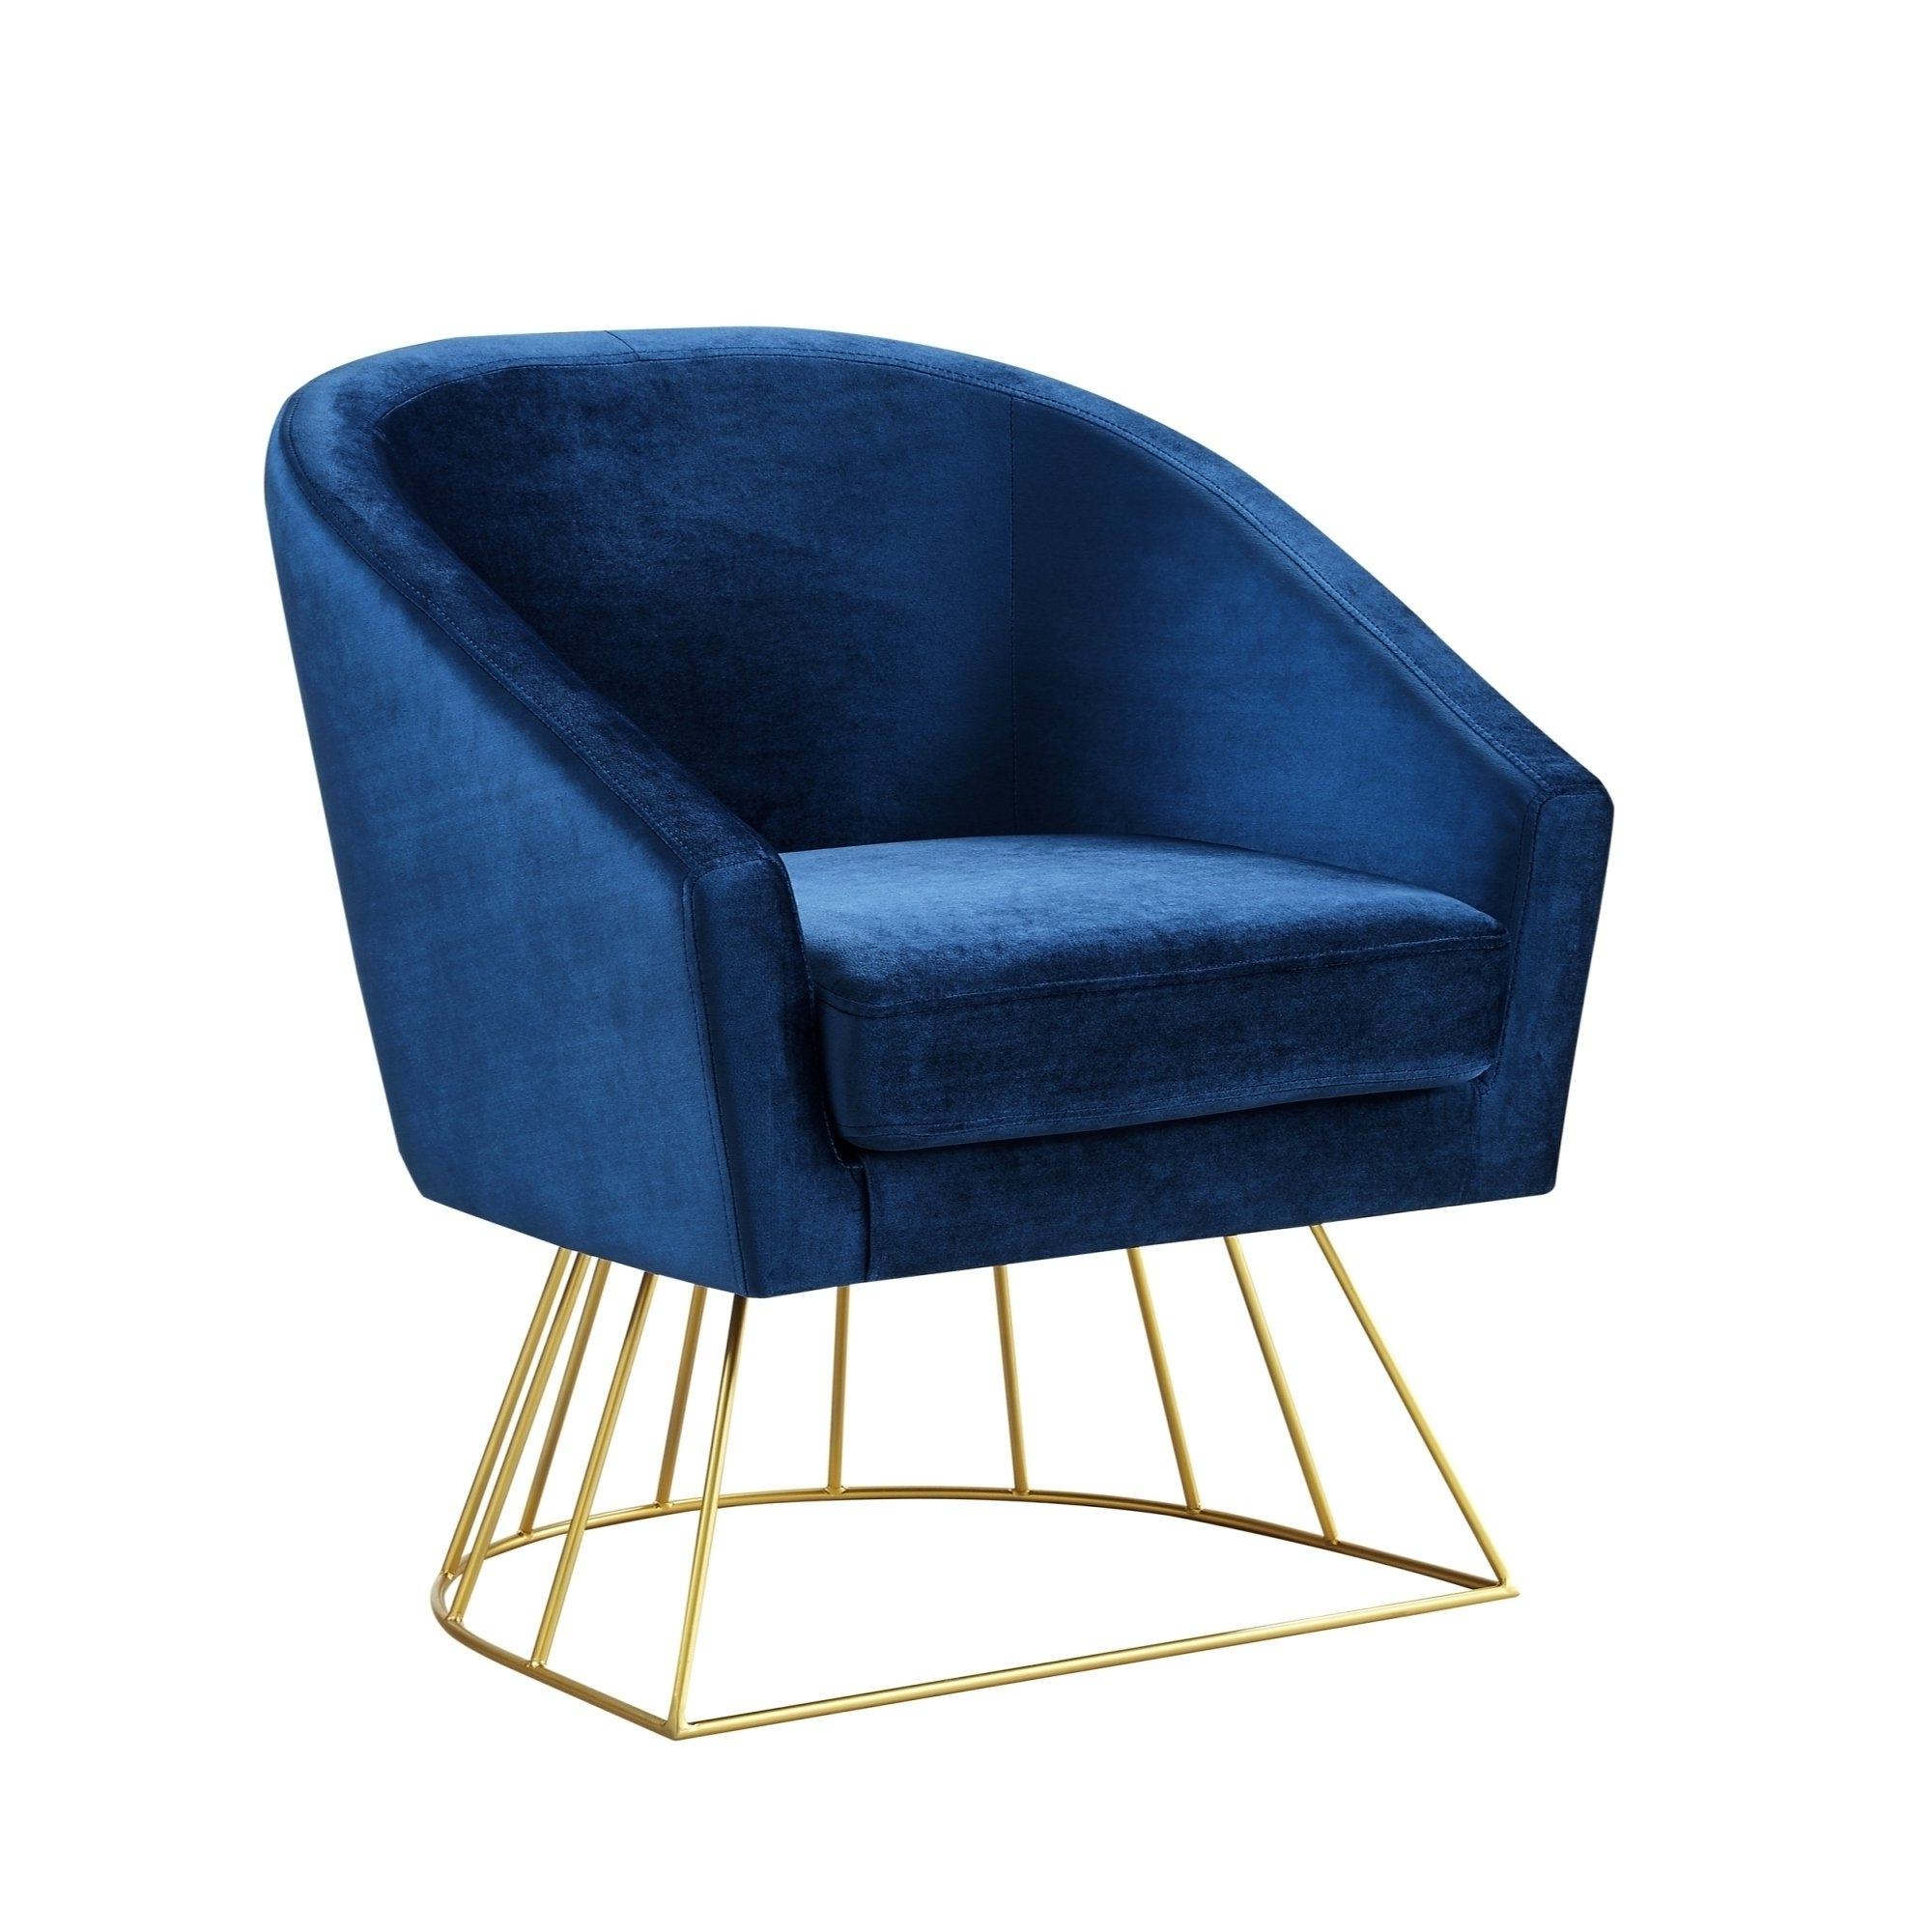 Buy Living Room Chairs Online At Overstock (Gallery 17 of 20)